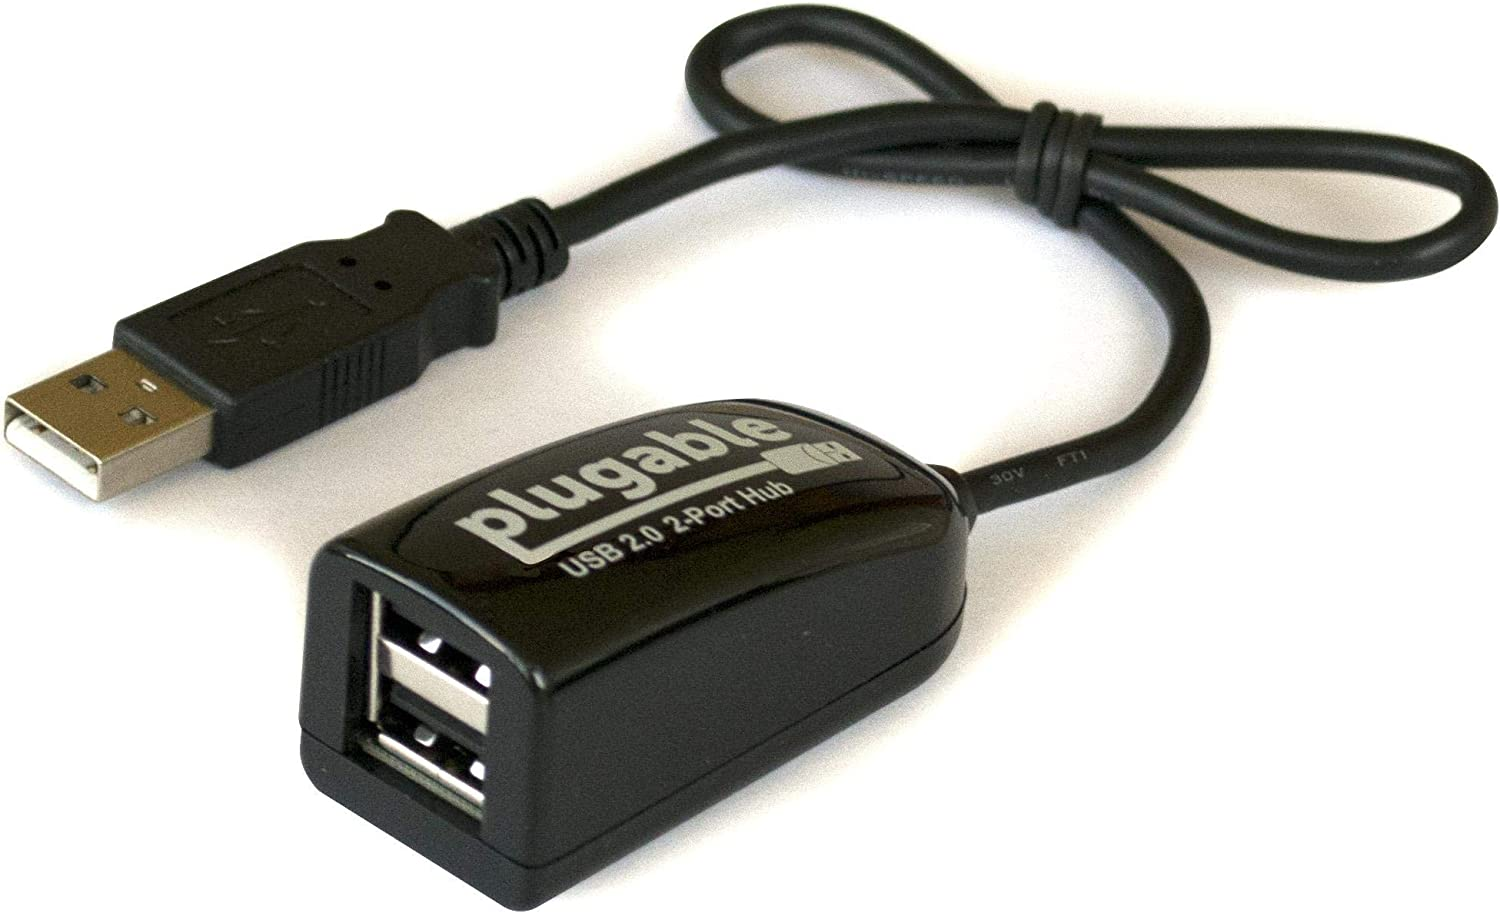 Plugable USB 2.0 2-Port High Speed Ultra Compact Hub Splitter (480 Mbps, USB 2.0, Compatible with Windows, Linux, macOS, Chrome OS)